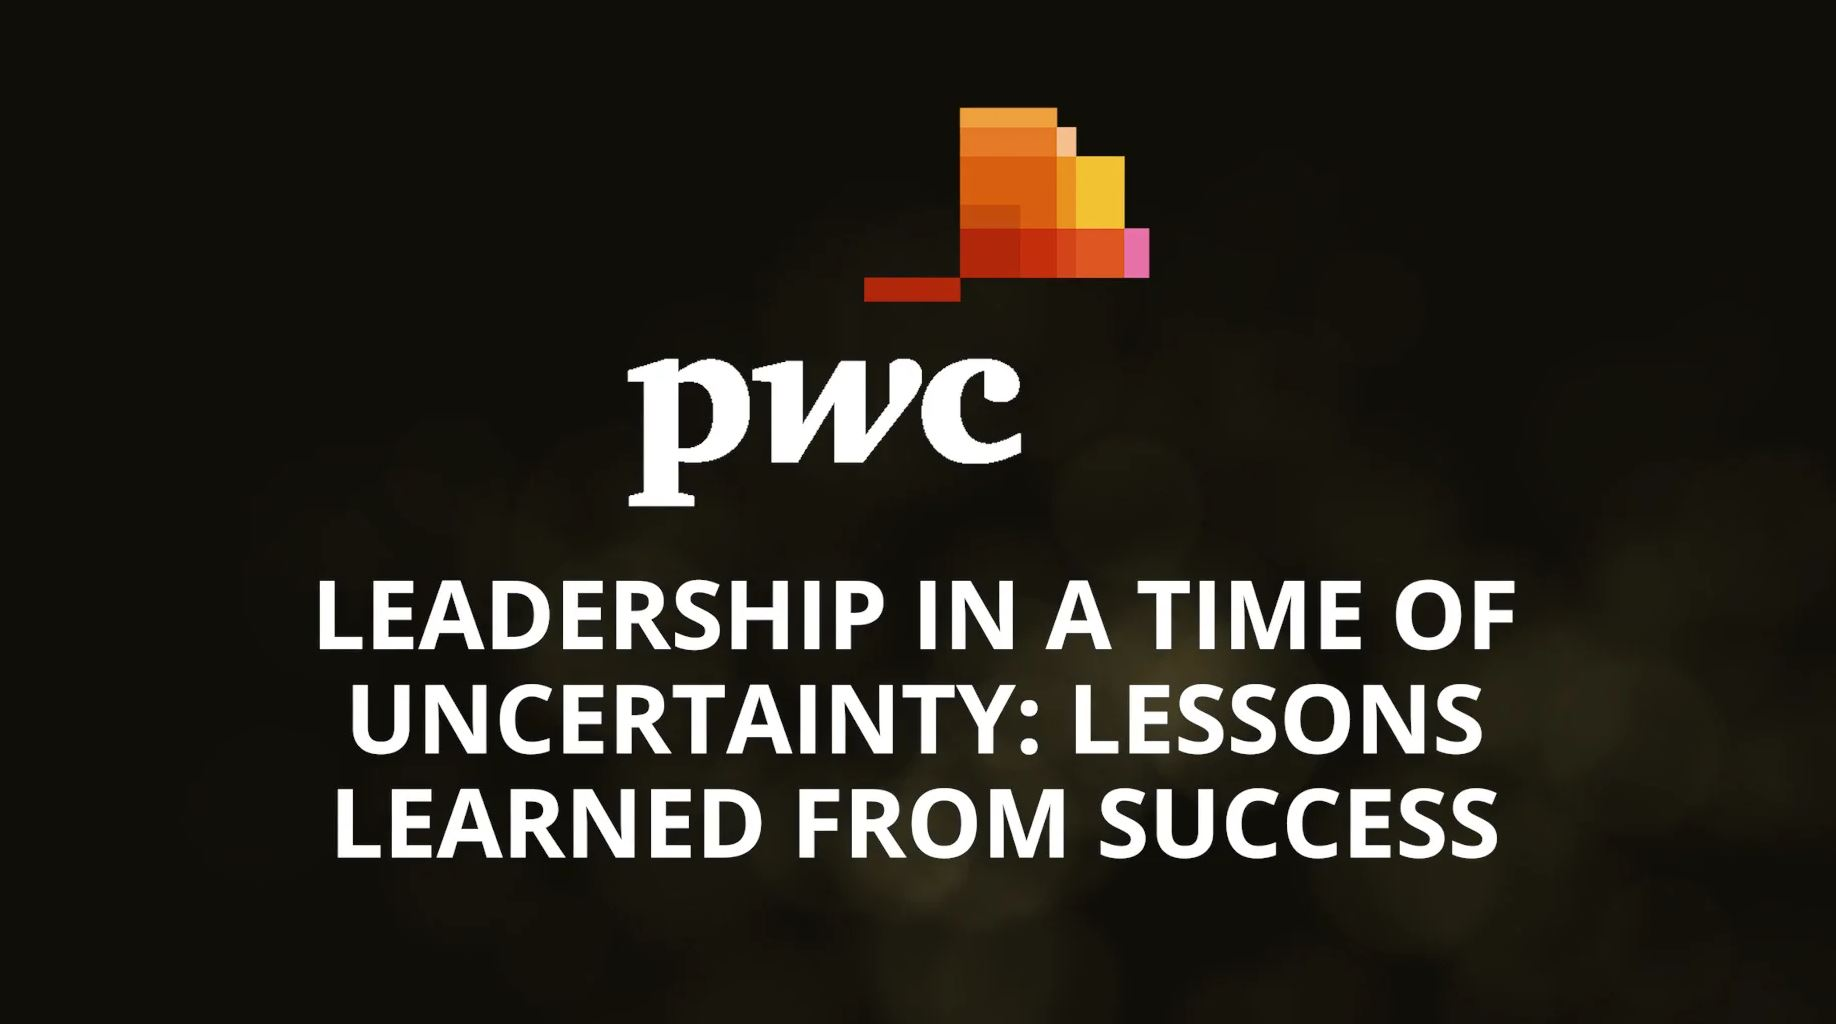 Leadership in a time of uncertainty: Lessons learned from success